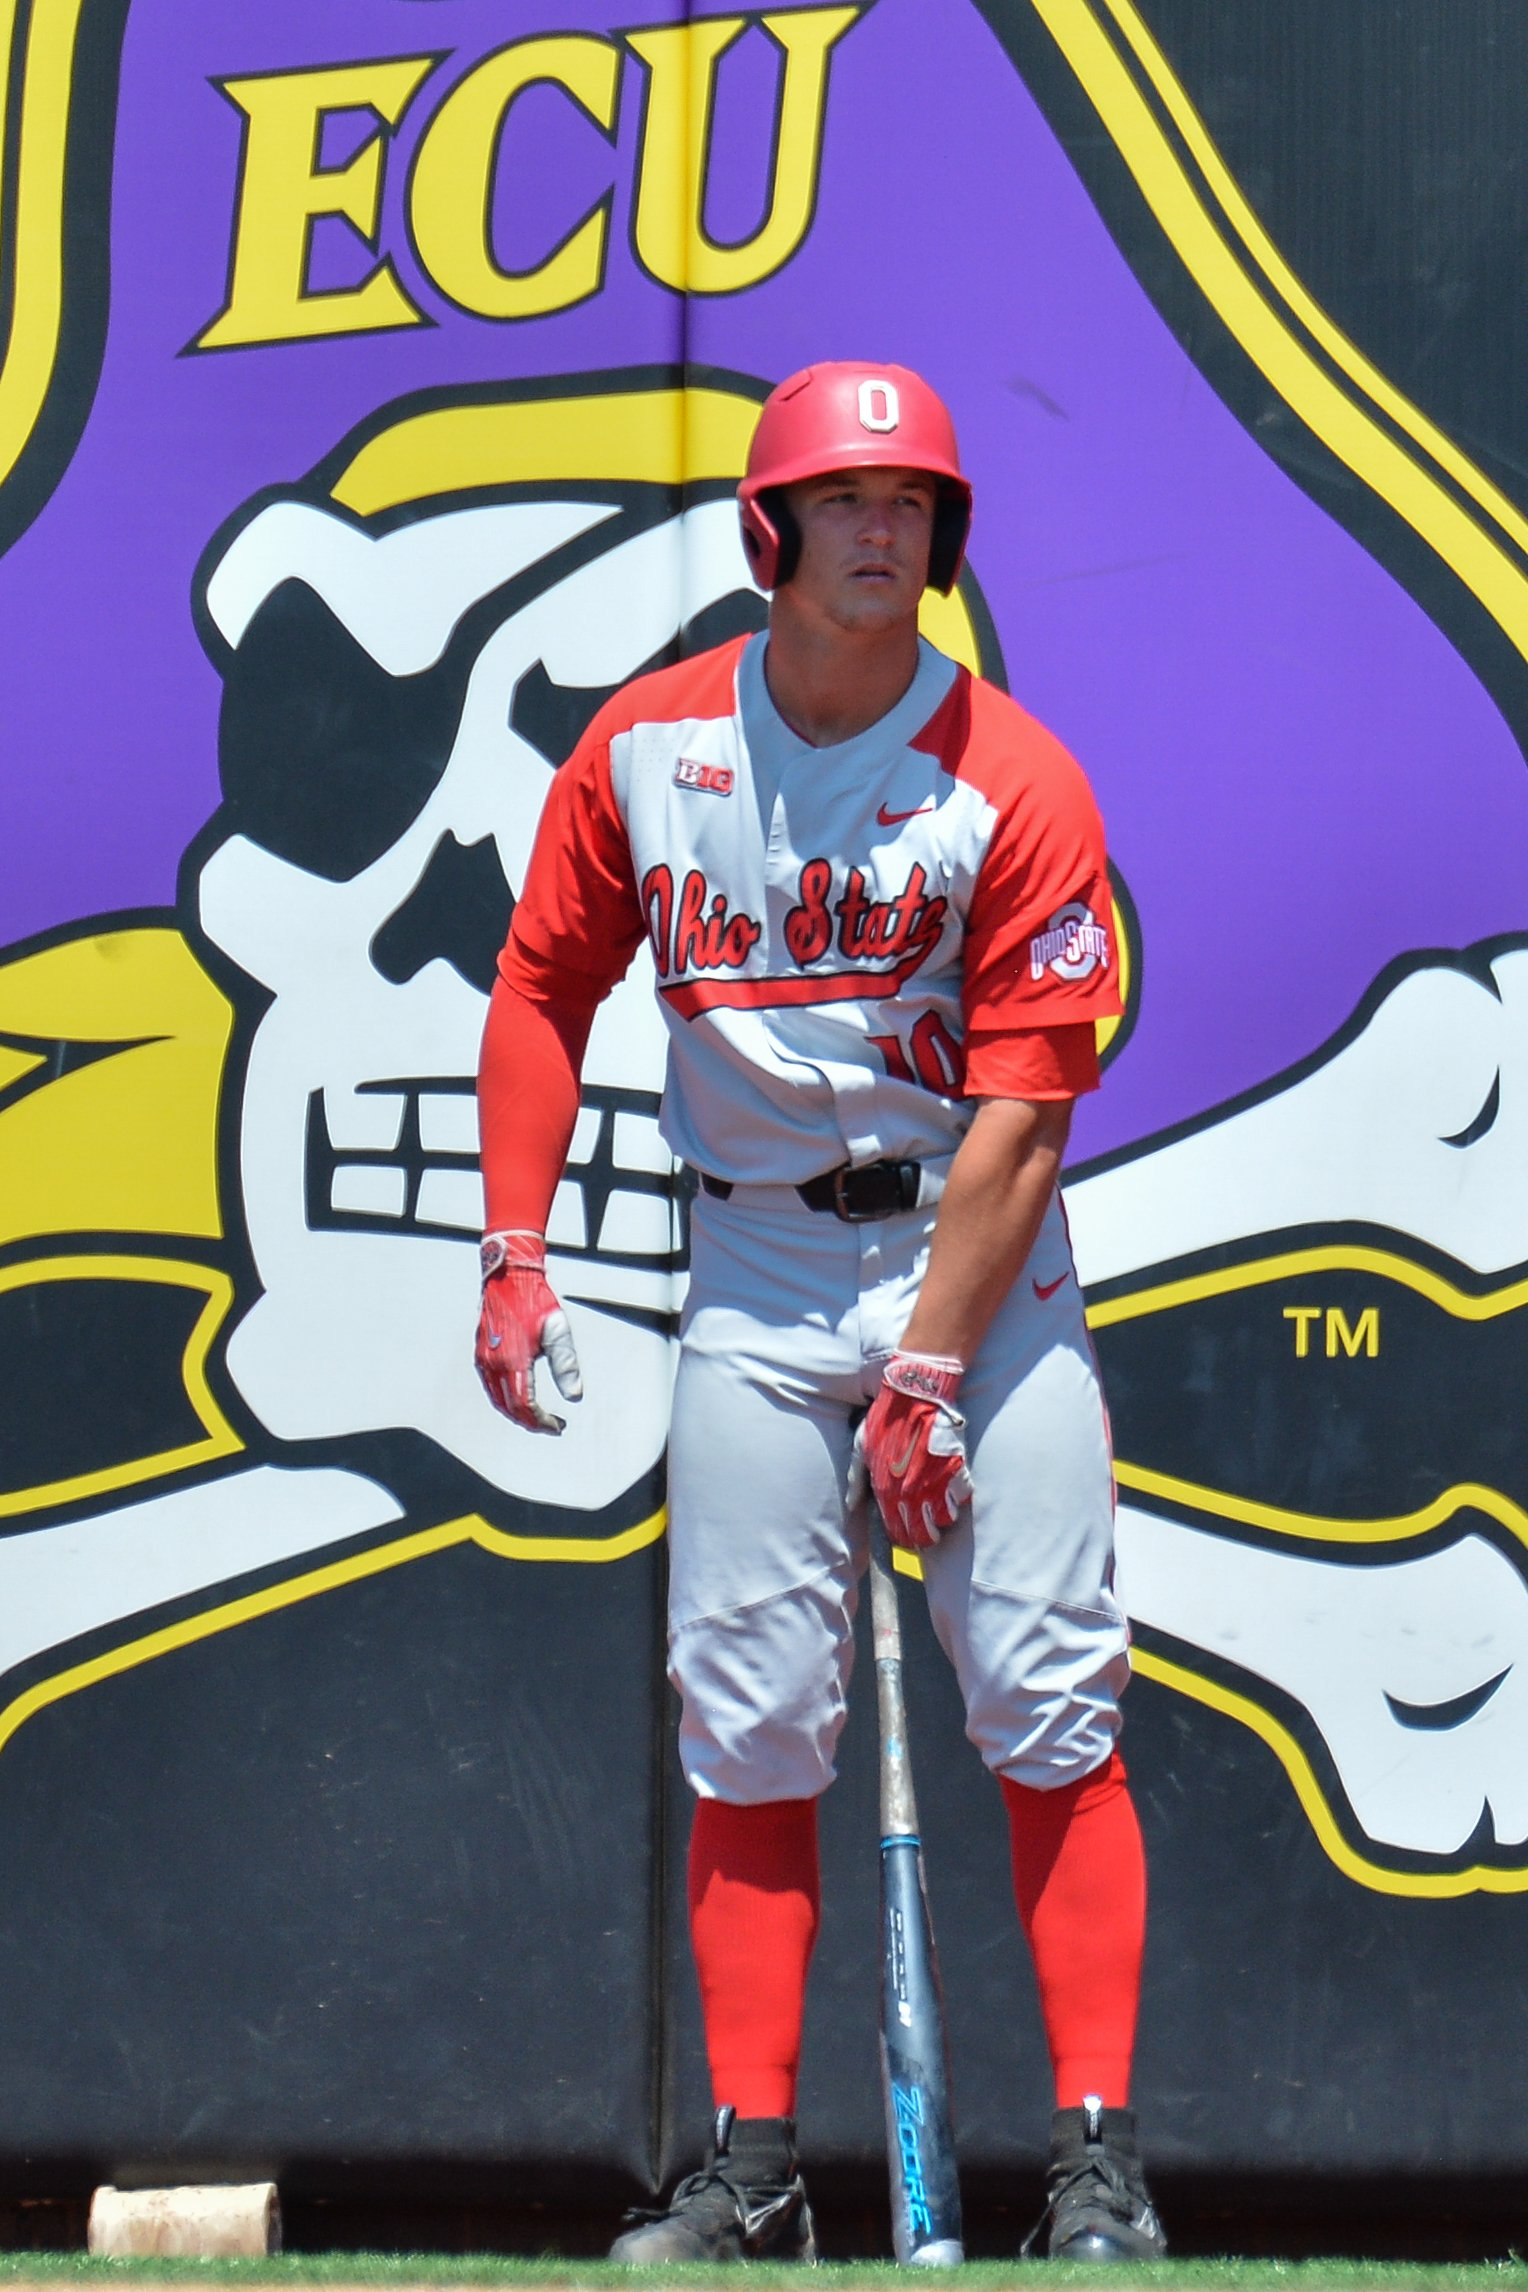 Dillon Dingler at Lewis Field at Clark-LeClair Stadium in Greenville, NC on June 1, 2018. | Photo: Getty Images